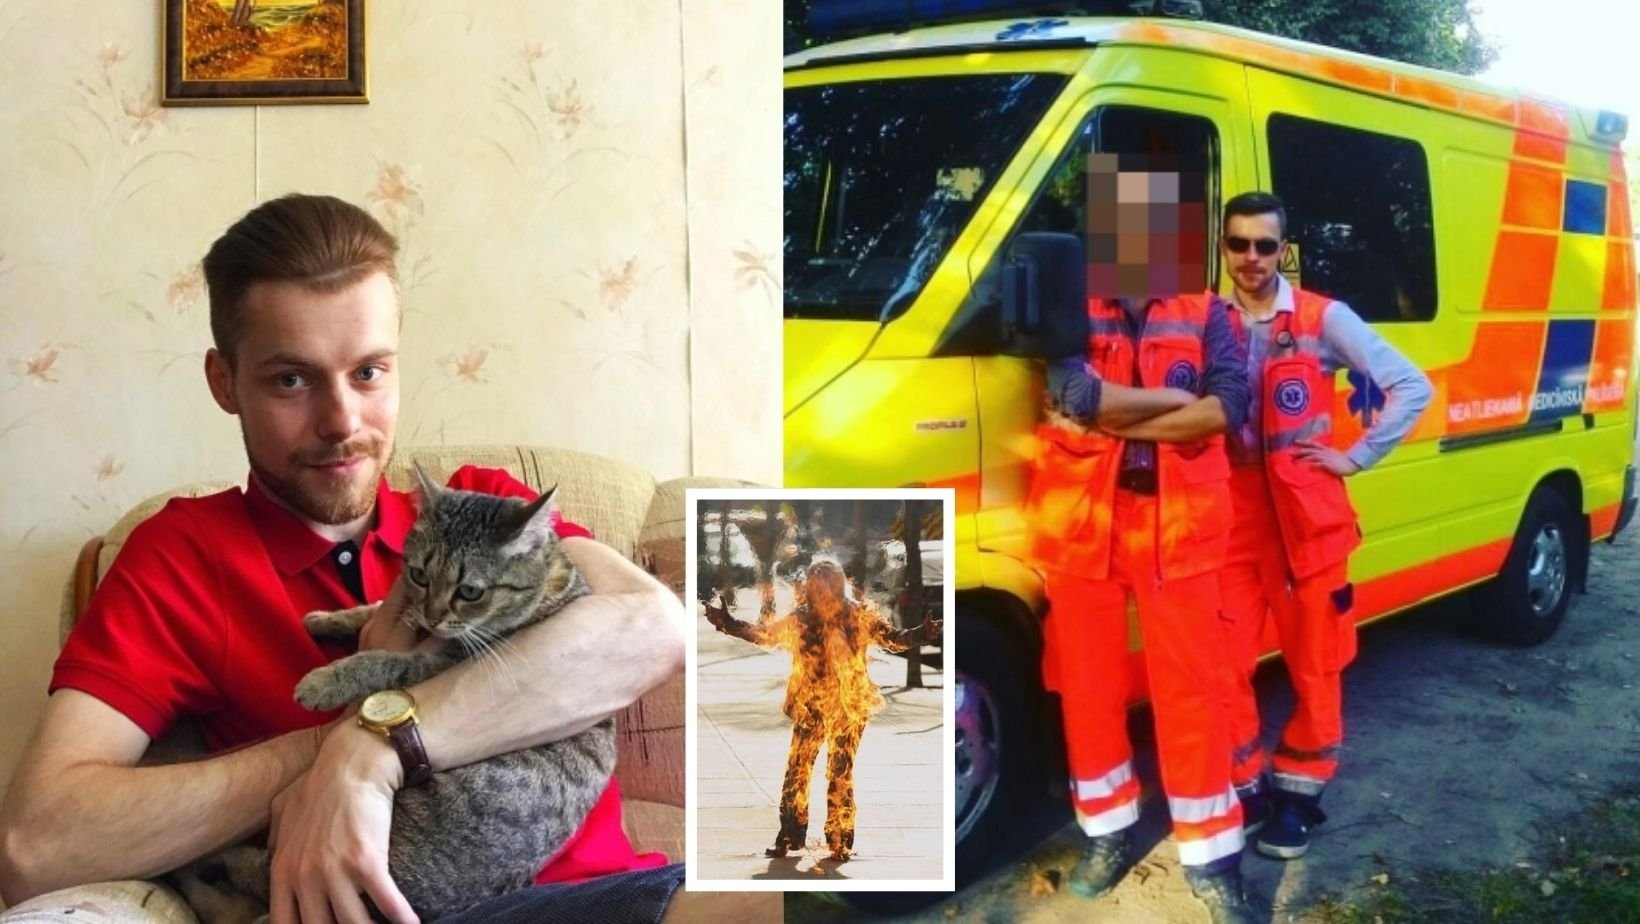 1 8.jpg?resize=1200,630 - Gay Paramedic Was Burned Alive In Homophobic Attack, Cops Are Slammed For Calling It 'Suicide'